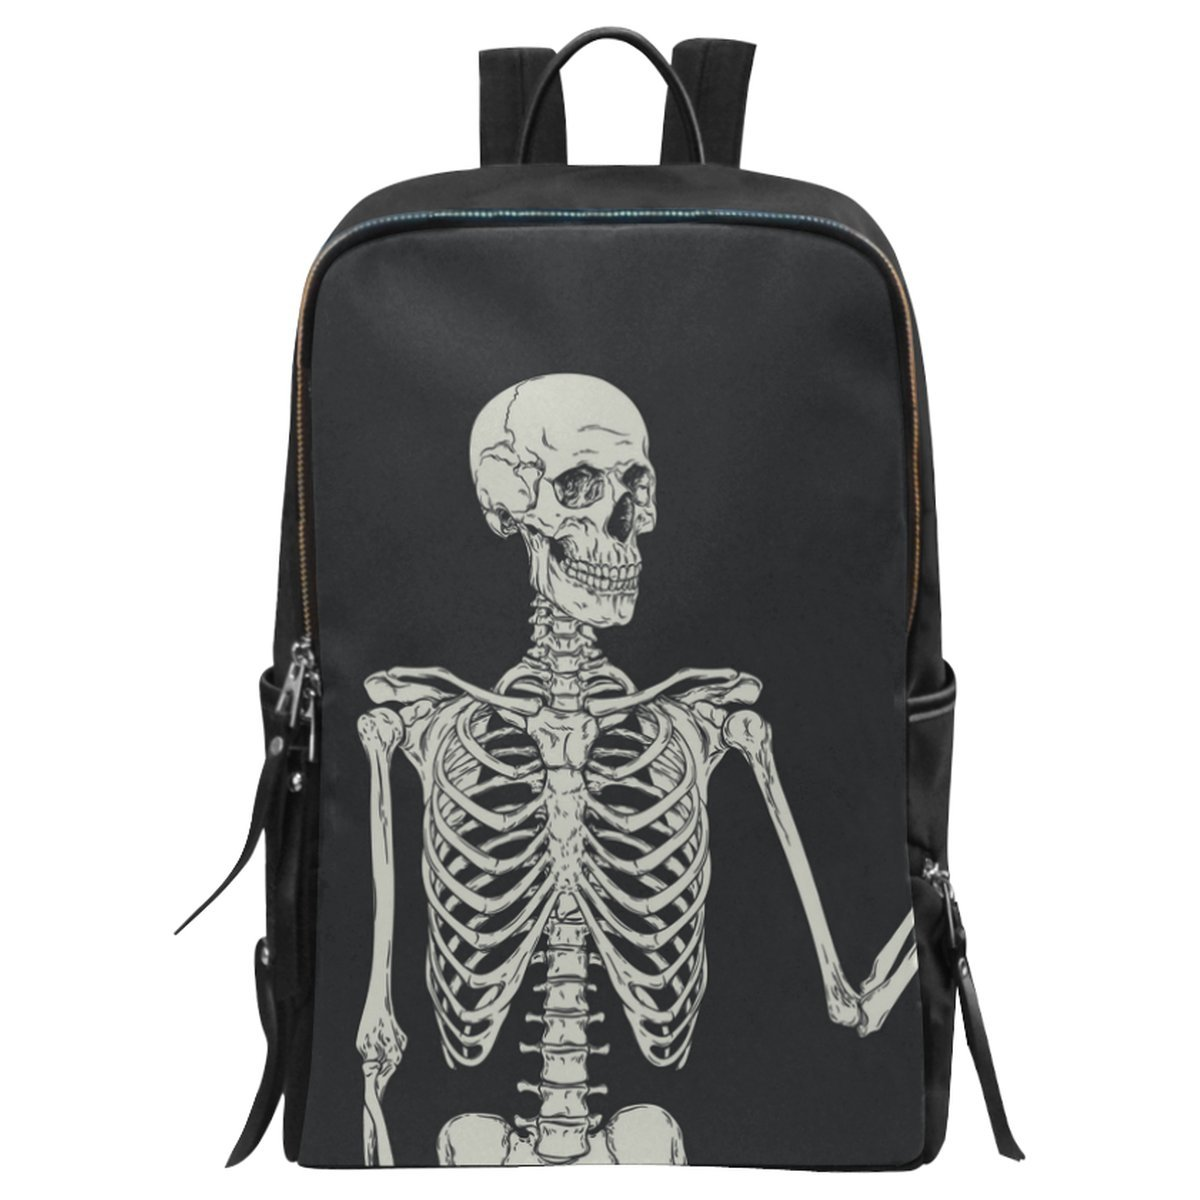 a32ca34bc6e6 InterestPrint Skull Human Skeleton School Casual Travel Backpack ...